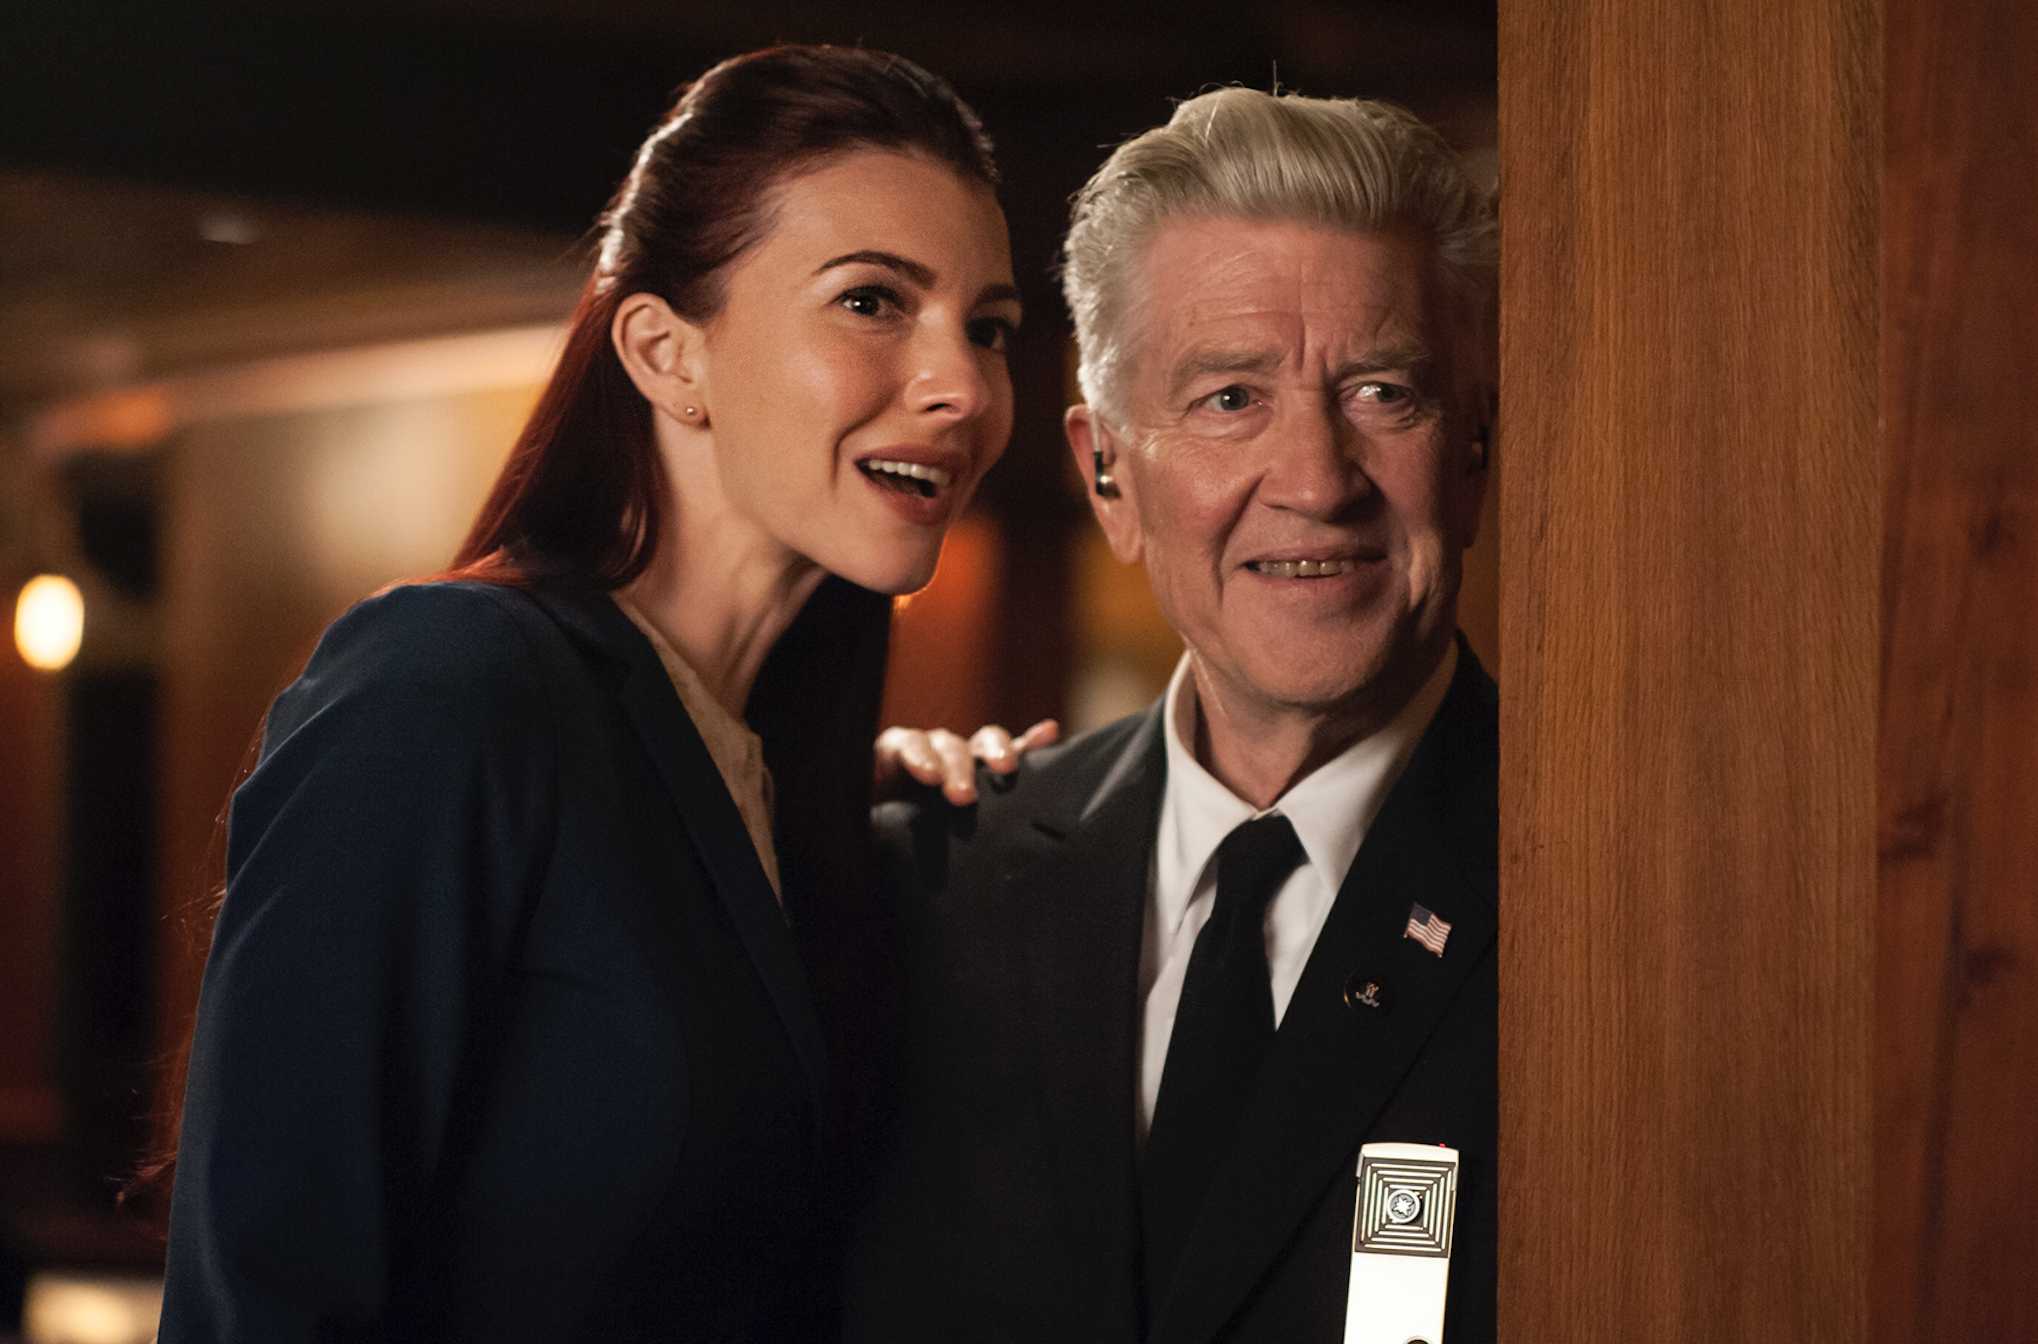 Twin Peaks season 4 could happen, as David Lynch says one story